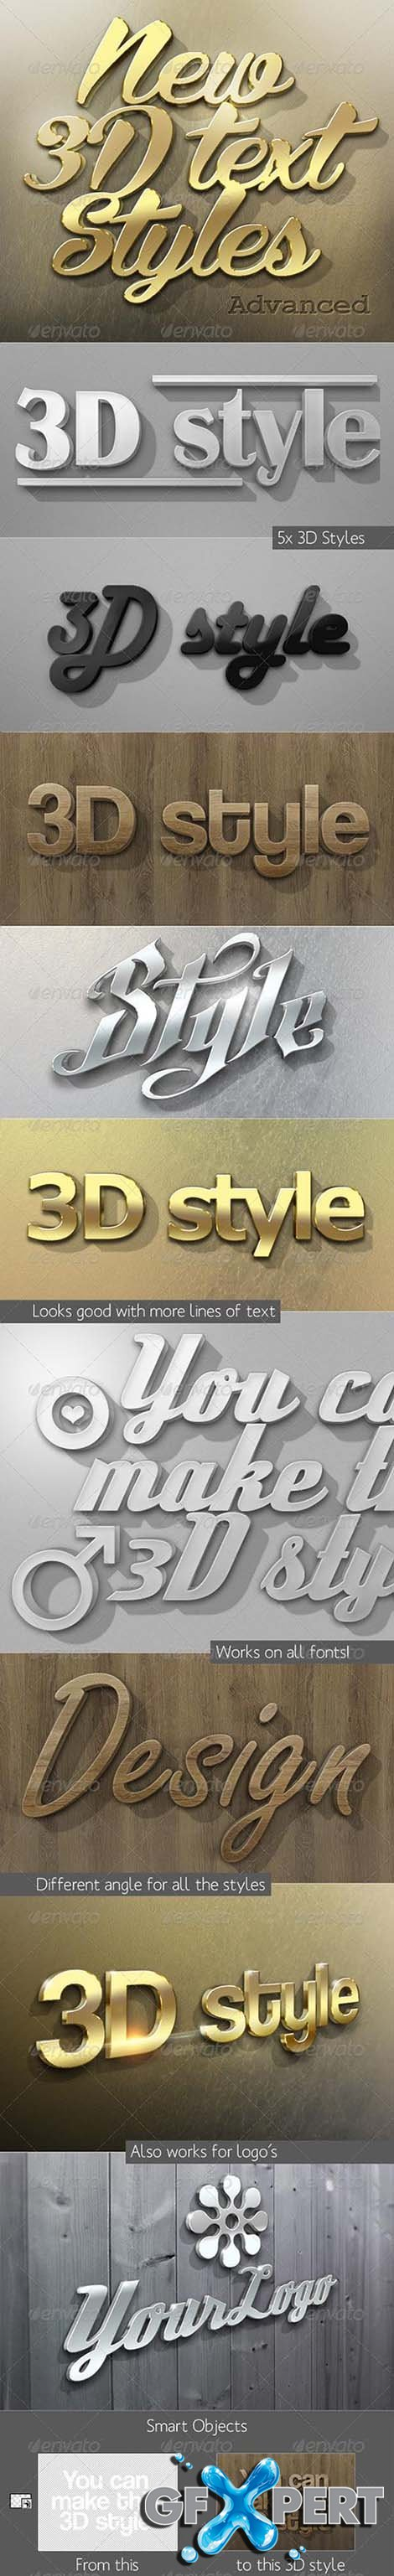 New 3D Text Styles Advanced 3803506